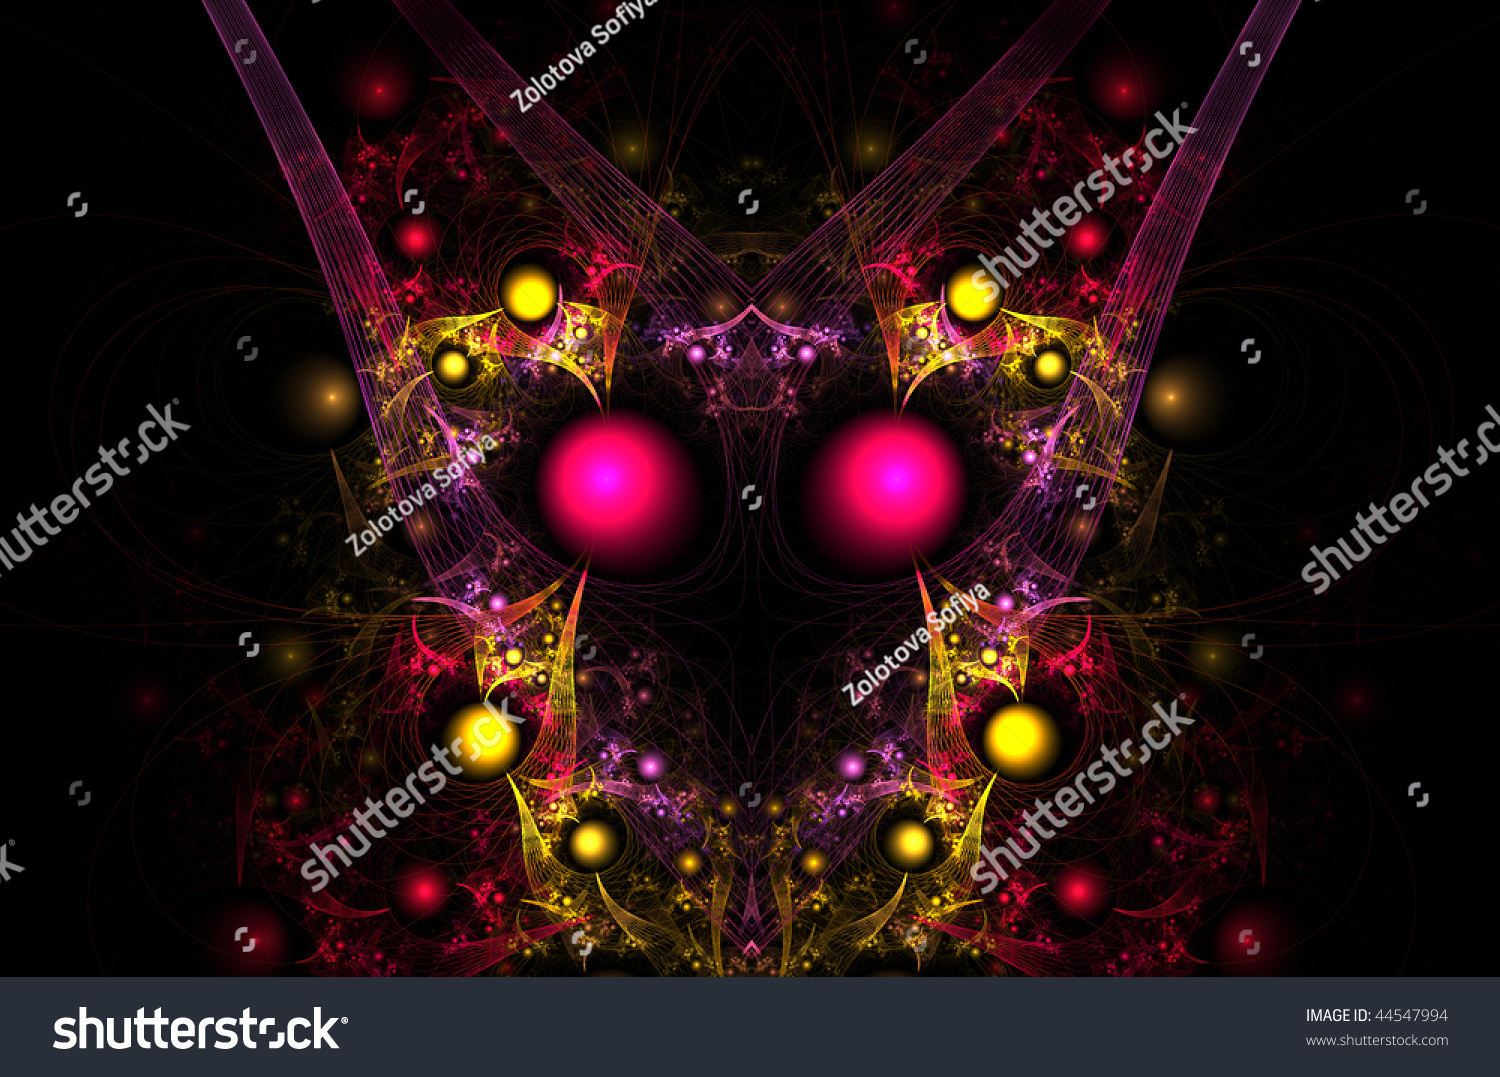 beautiful colorful fractals stock illustration 44547994 - shutterstock